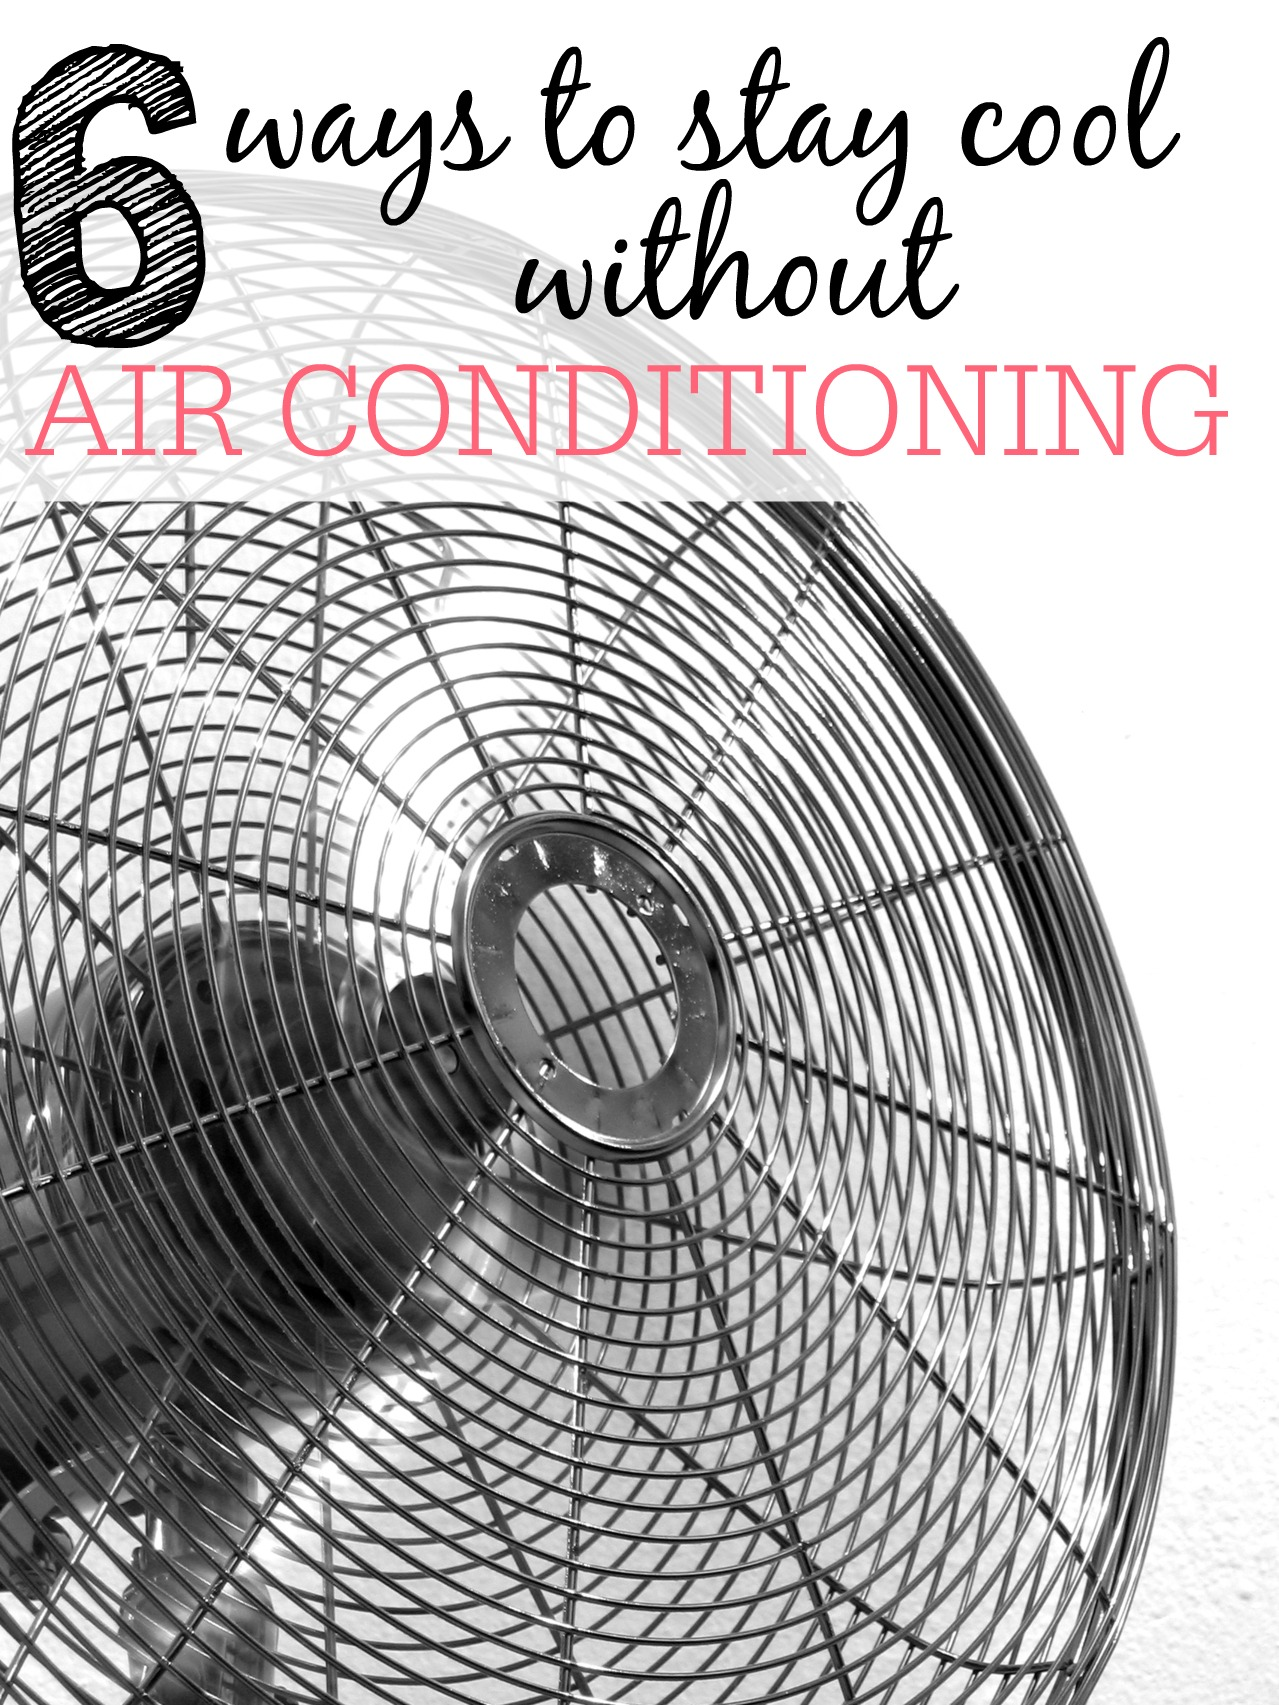 6 ways to stay cool without air conditioning